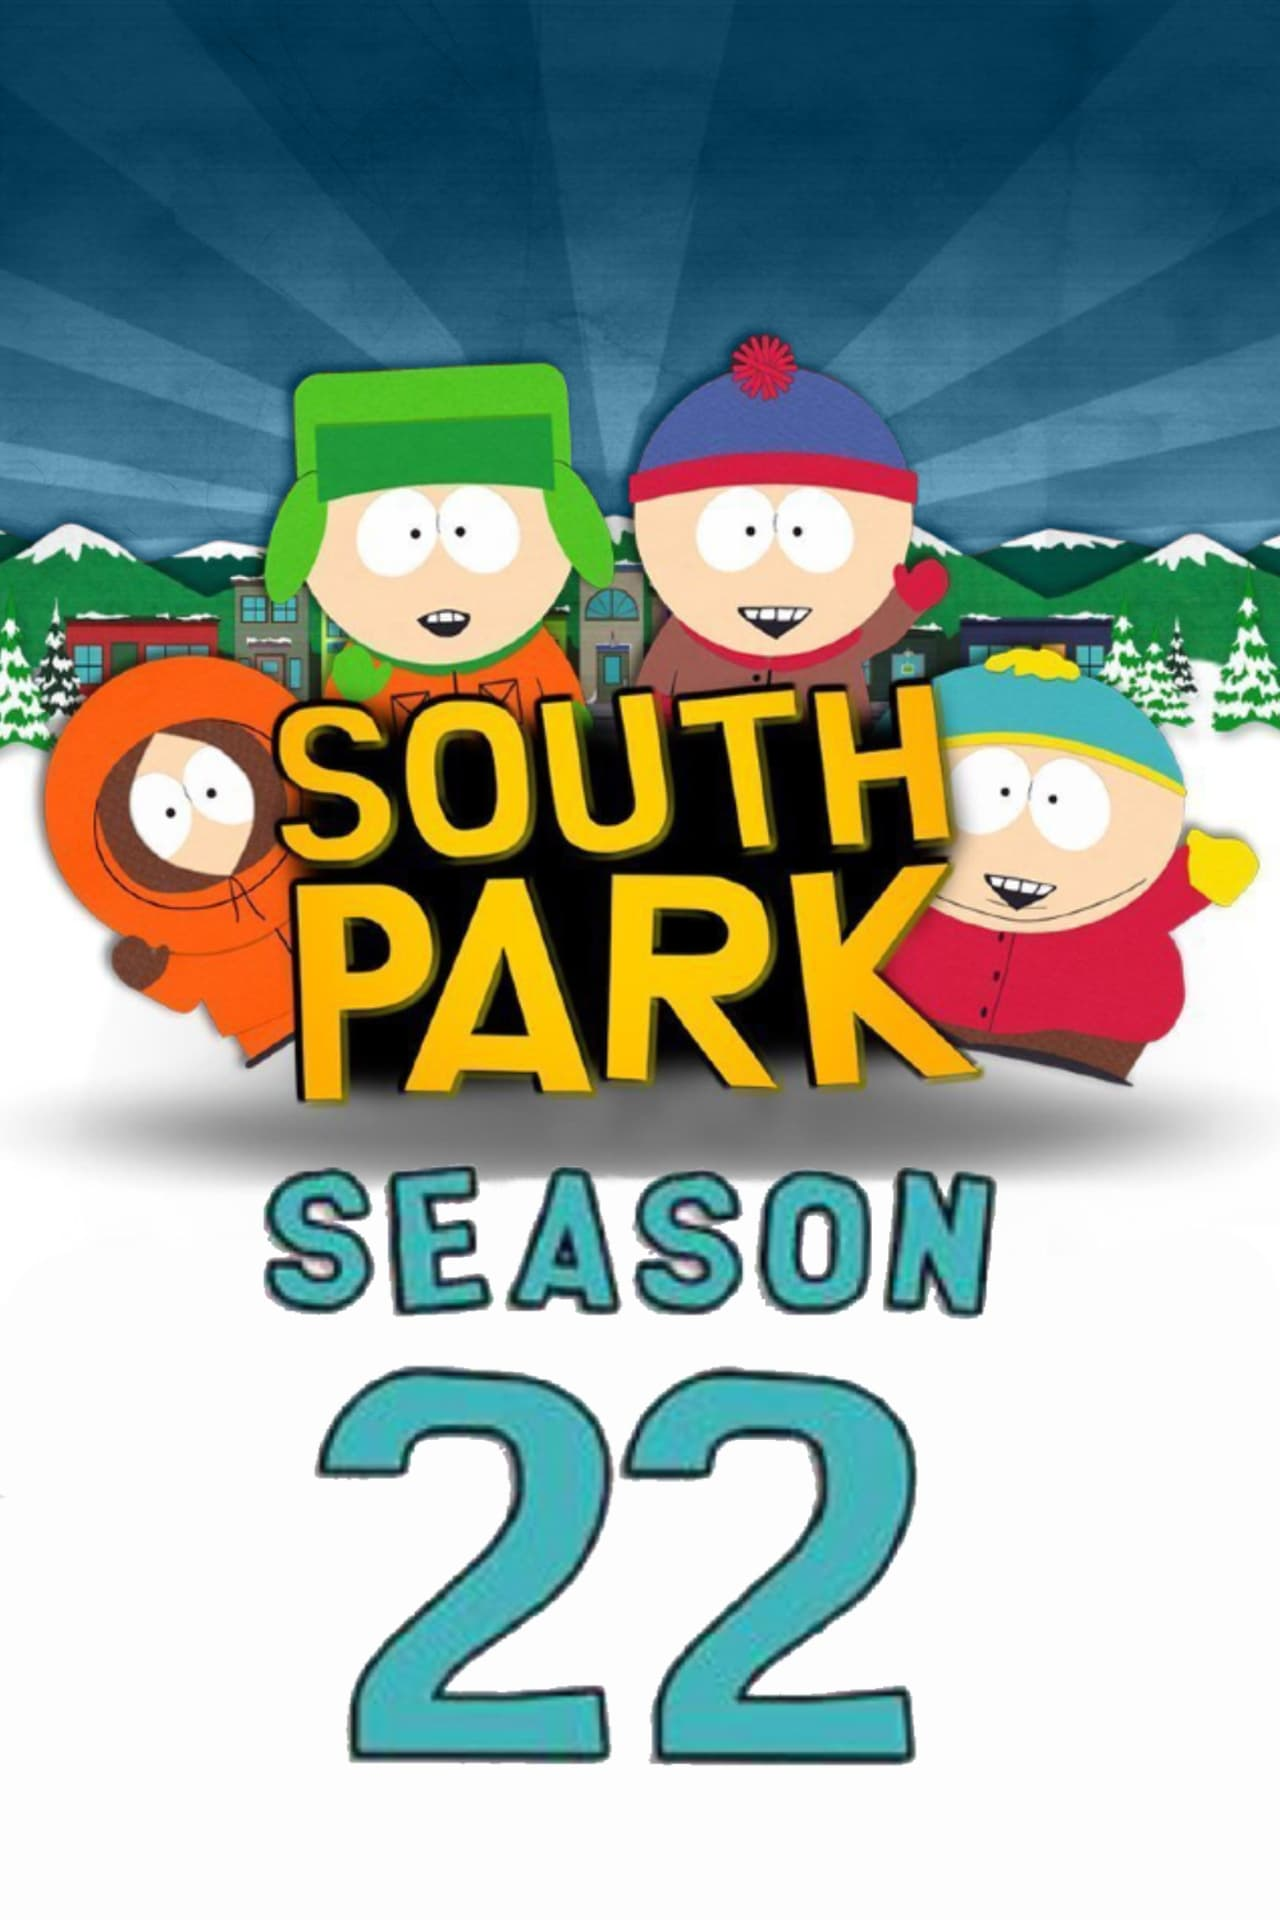 South Park Season 22 (2018) putlockers cafe